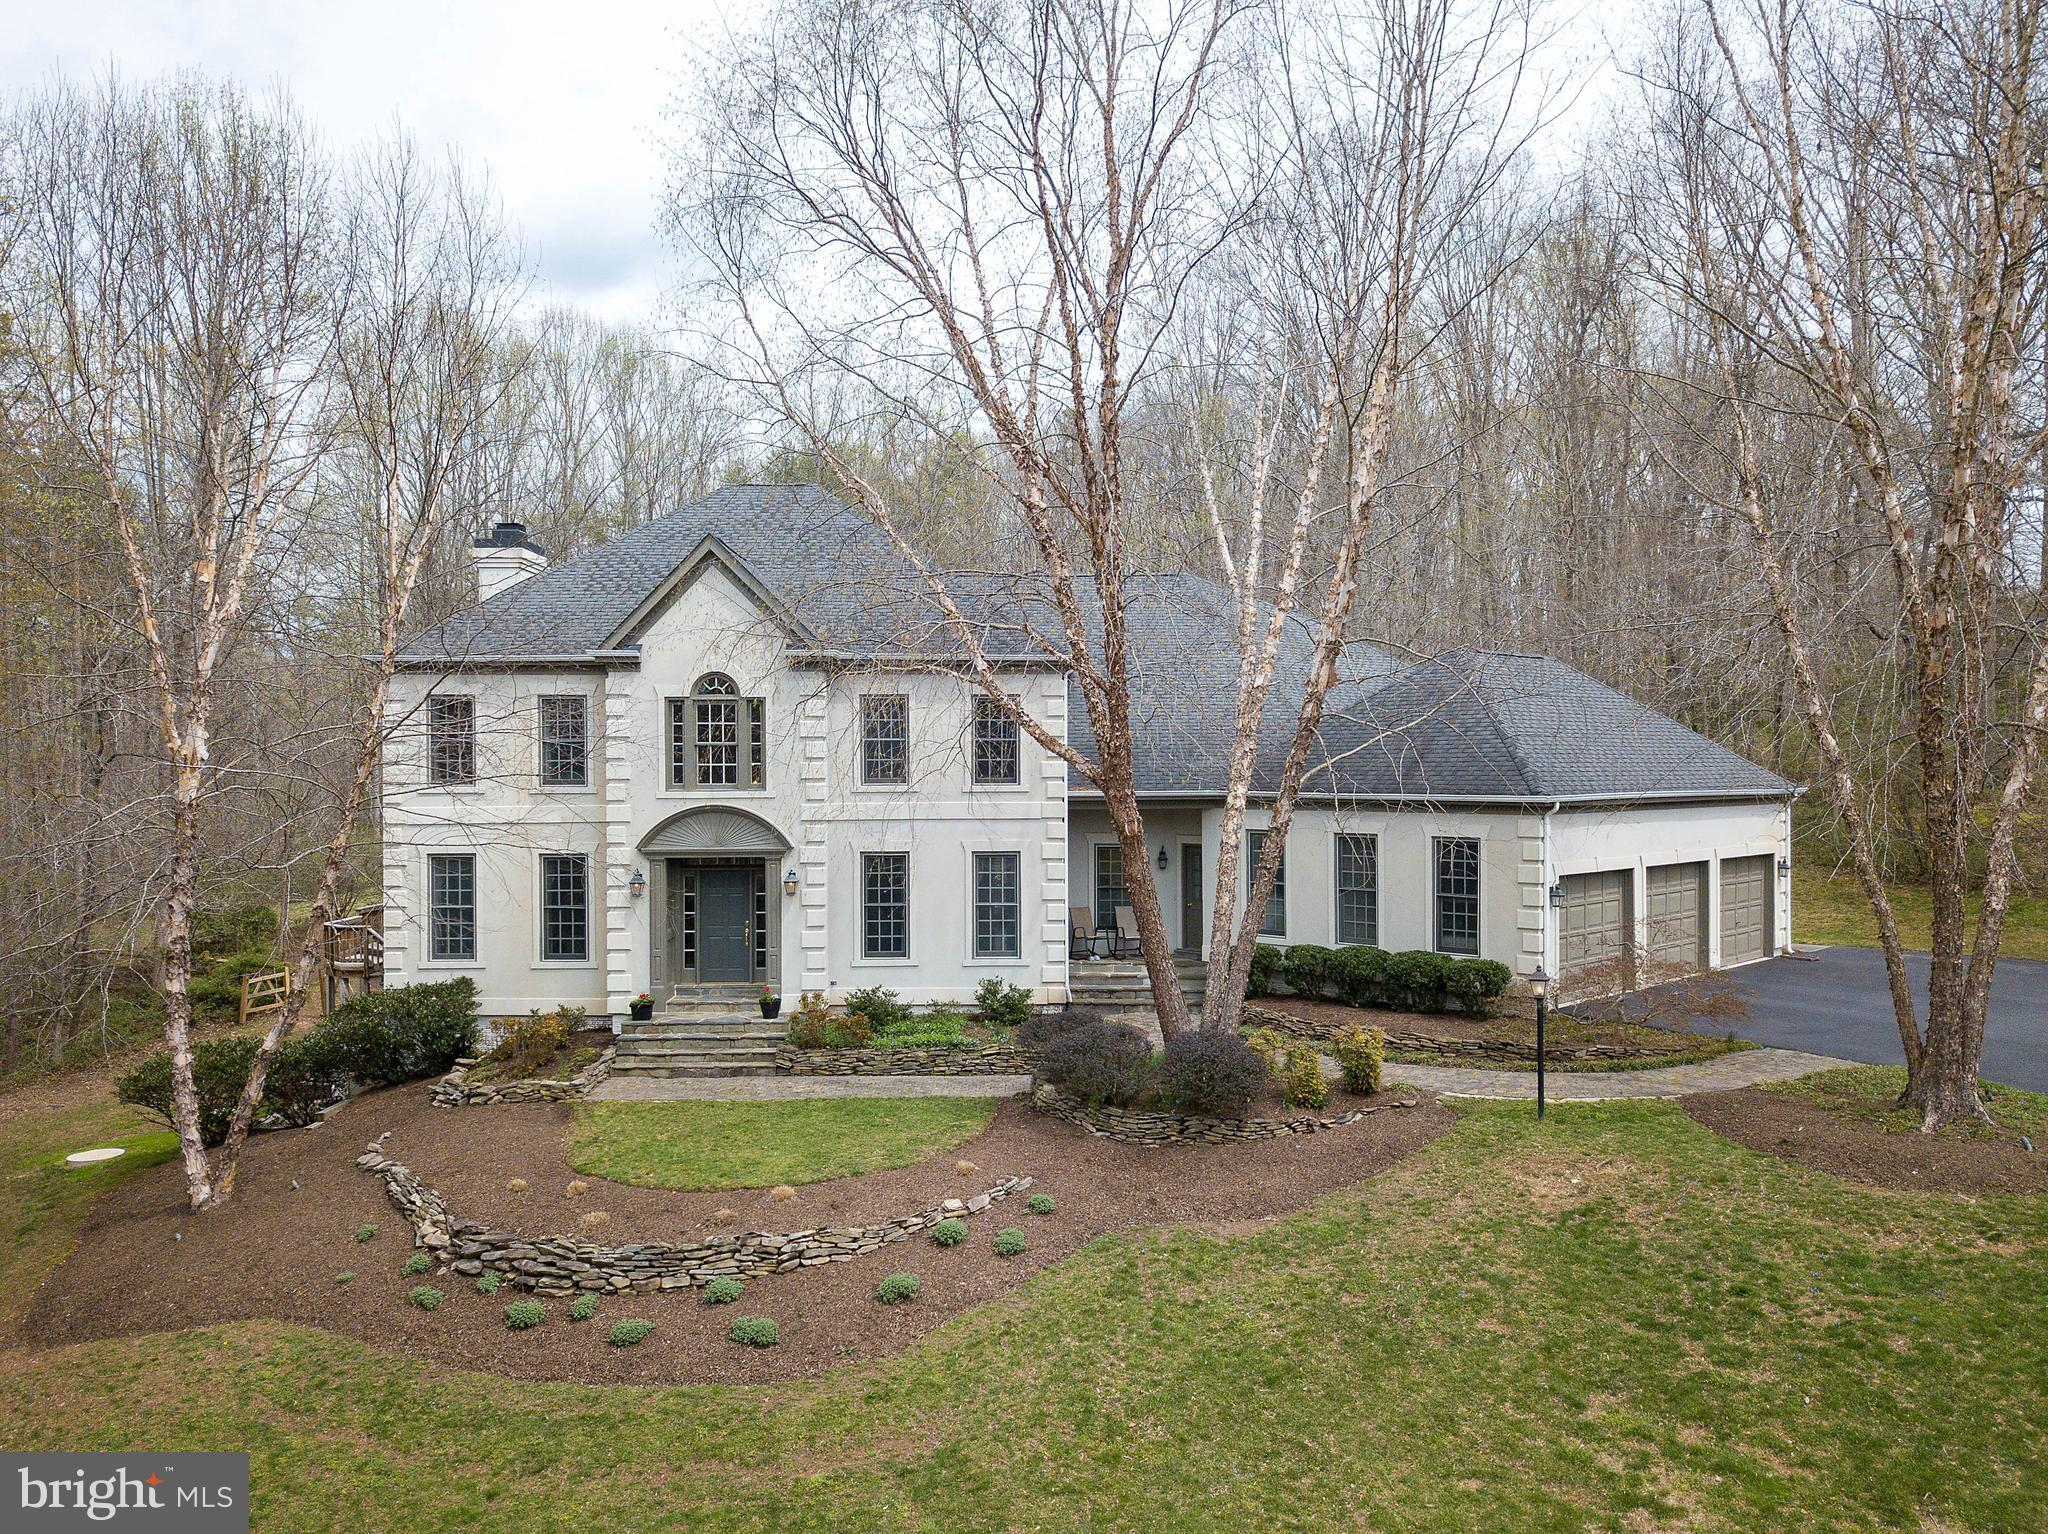 OPEN SUNDAY 4/14 FROM 1-4**This custom designed and built Transitional Colonial is located in THE ENGLISH HILLS one of Fairfax Station~s finest communities. Step inside and you will be impressed by the open exciting floor plan design. Enhanced with architectural details, this home features three finished levels tall ceilings, gas fireplace with custom built-ins, generator, two zone HVAC systems, designer d~cor, numerous recessed lighting and gleaming hardwood flooring.The main level includes a two story open foyer, spacious chef~s kitchen with granite counter tops, natural cherry cabinets, built in desk, two wall ovens, five burner gas cooktop, refrigerator with icemaker, dishwasher, a large sun filled breakfast room with boxed bay window seat, family room with french doors, palladium windows, gas fireplace with built- ins, main level powder room, formal living room, lovely gracious dining room and a main level guest bedroom/den with full bath.Just a few steps from the kitchen area you will find an additional front entrance with back foyer, laundry room and second staircase up to bedroom level.  Up the staircase to the fabulous bedroom level where you can relax in the open loft/bedroom area The master suite with spacious walk in closet, designer bath with two vanities, large glass tile shower and soaking  Jacuzzi  tub and skylight. There are two additional spacious bedrooms each with their own full bath. No stone has been left un-turned to compete this fabulous home, the lower level has ample space for all, a game room, recreation room, and party bar with built in  cabinets plus an spacious additional bedroom and  full bath and HUGE storage area. This extraordinary private five acre estate features circular driveway allowing for easy entrance and exit to home. Extensive landscaping, stone walkways, stone retaining walls,  mature trees and abundant wildlife. This home is perfectly sited with wooded views from every vantage point. Enjoy peaceful evenings and cool afternoons on your spacious multi- level deck.  You can vacation at home in your in-ground heated pool complete with waterfall and hot tub/spa.Welcome HOME!